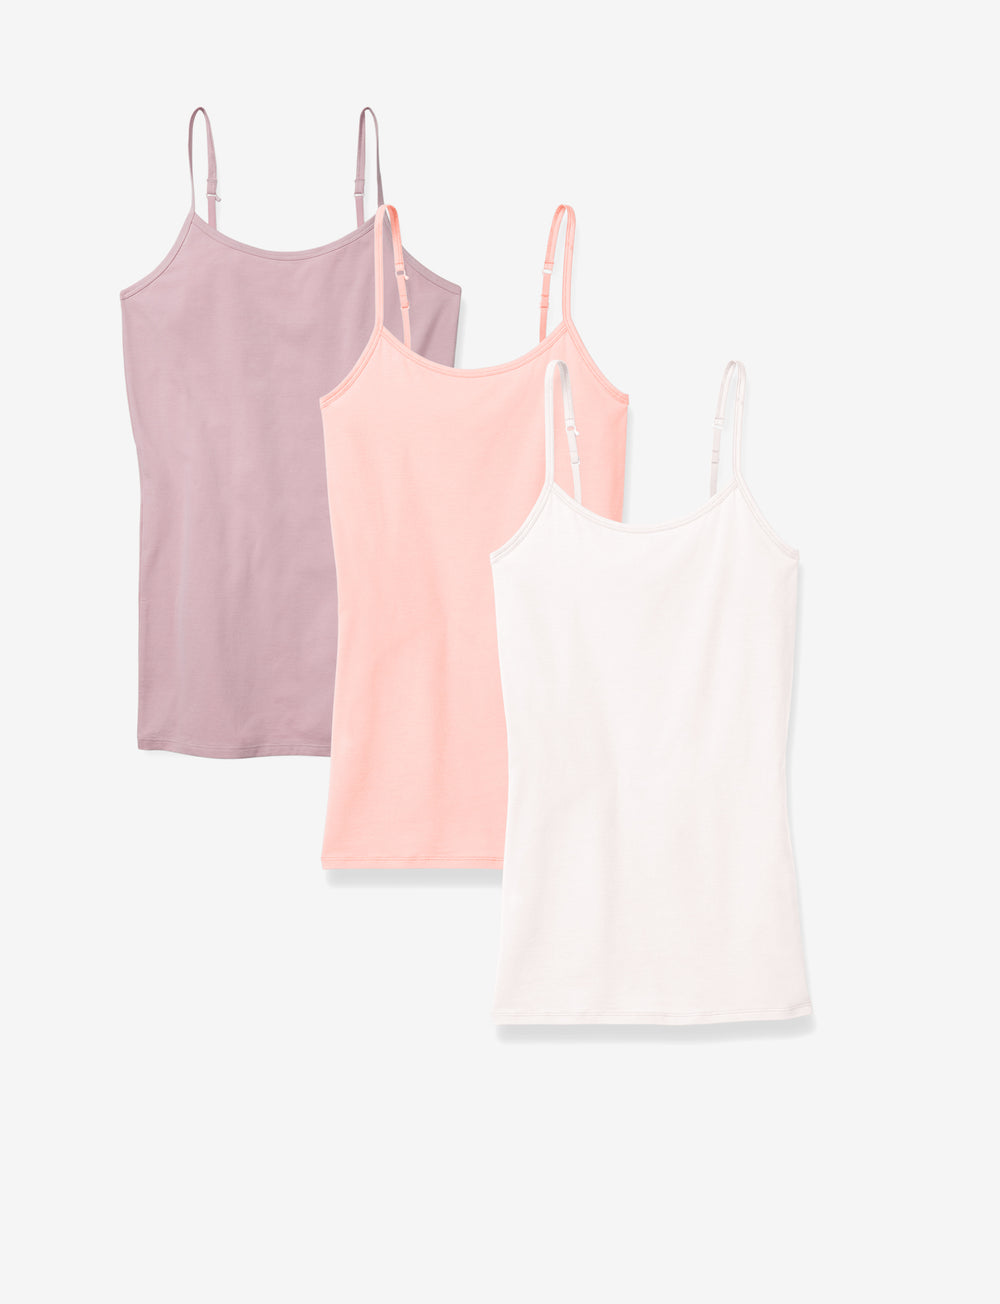 Women's Cool Cotton Peachy Cami 3 Pack Details Image